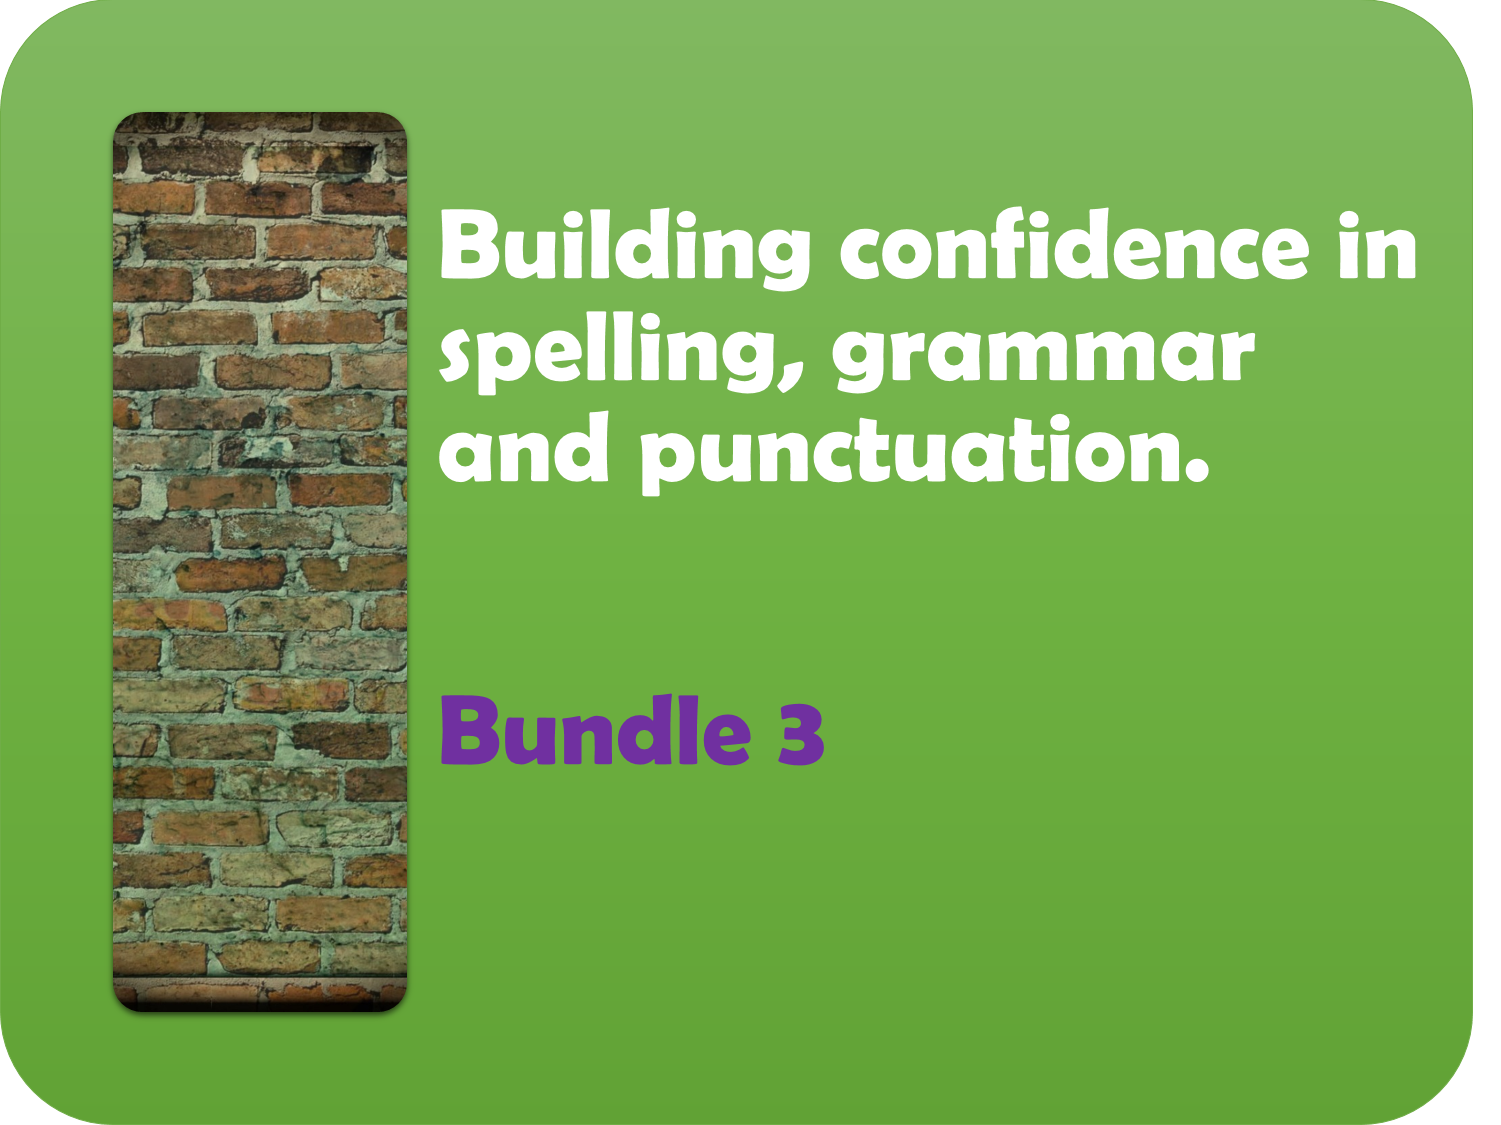 Building confidence in spelling, punctuation and grammar 3